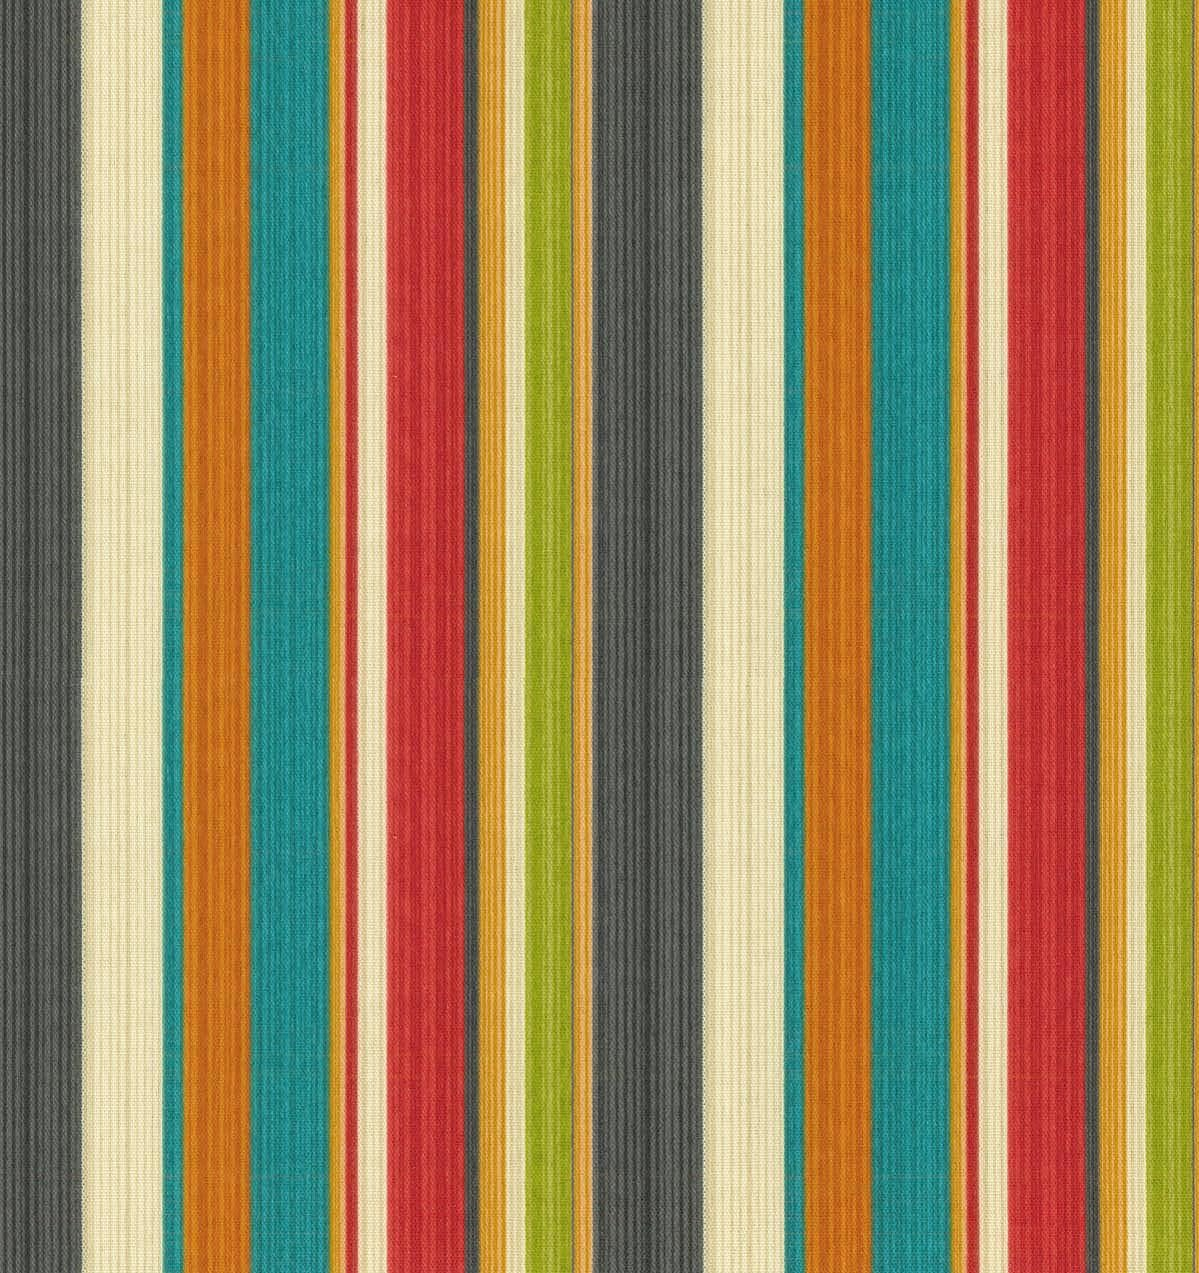 RSH DECOR Set of 4 - Indoor/Outdoor 17'' Square Decorative Throw Toss Pillows ~ Draw The Line Fiesta Stripe Black Green Yellow Red Blue